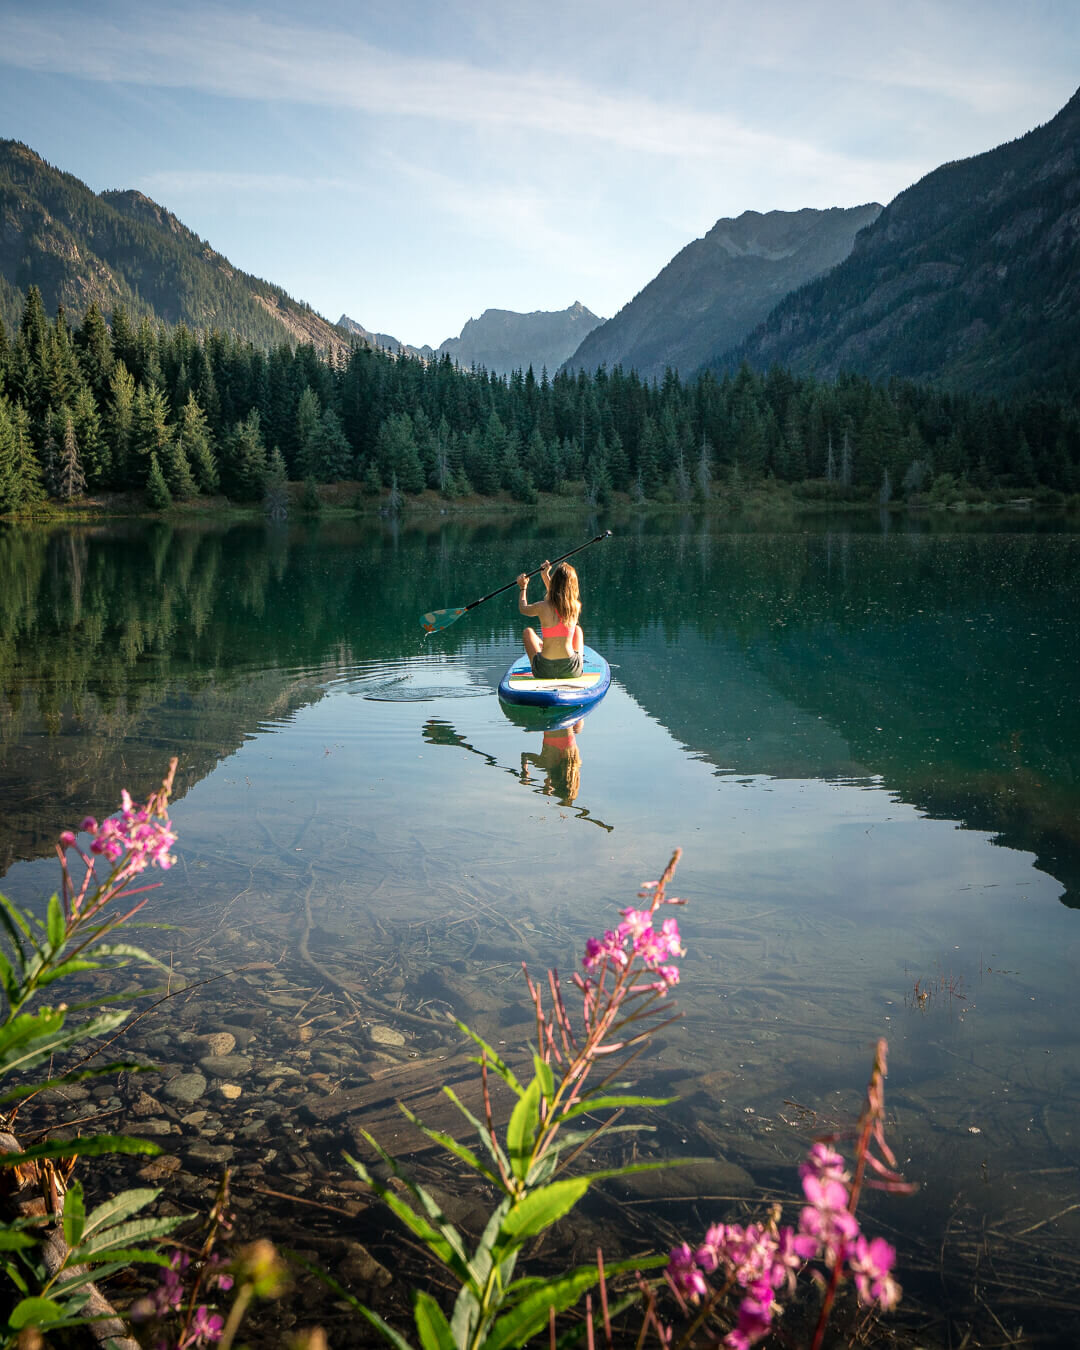 Early mornings at Gold Creek Pond. Note: Gold Creek Pond was formally a gravel pit mine. Consequently swimming in the water is not permitted.